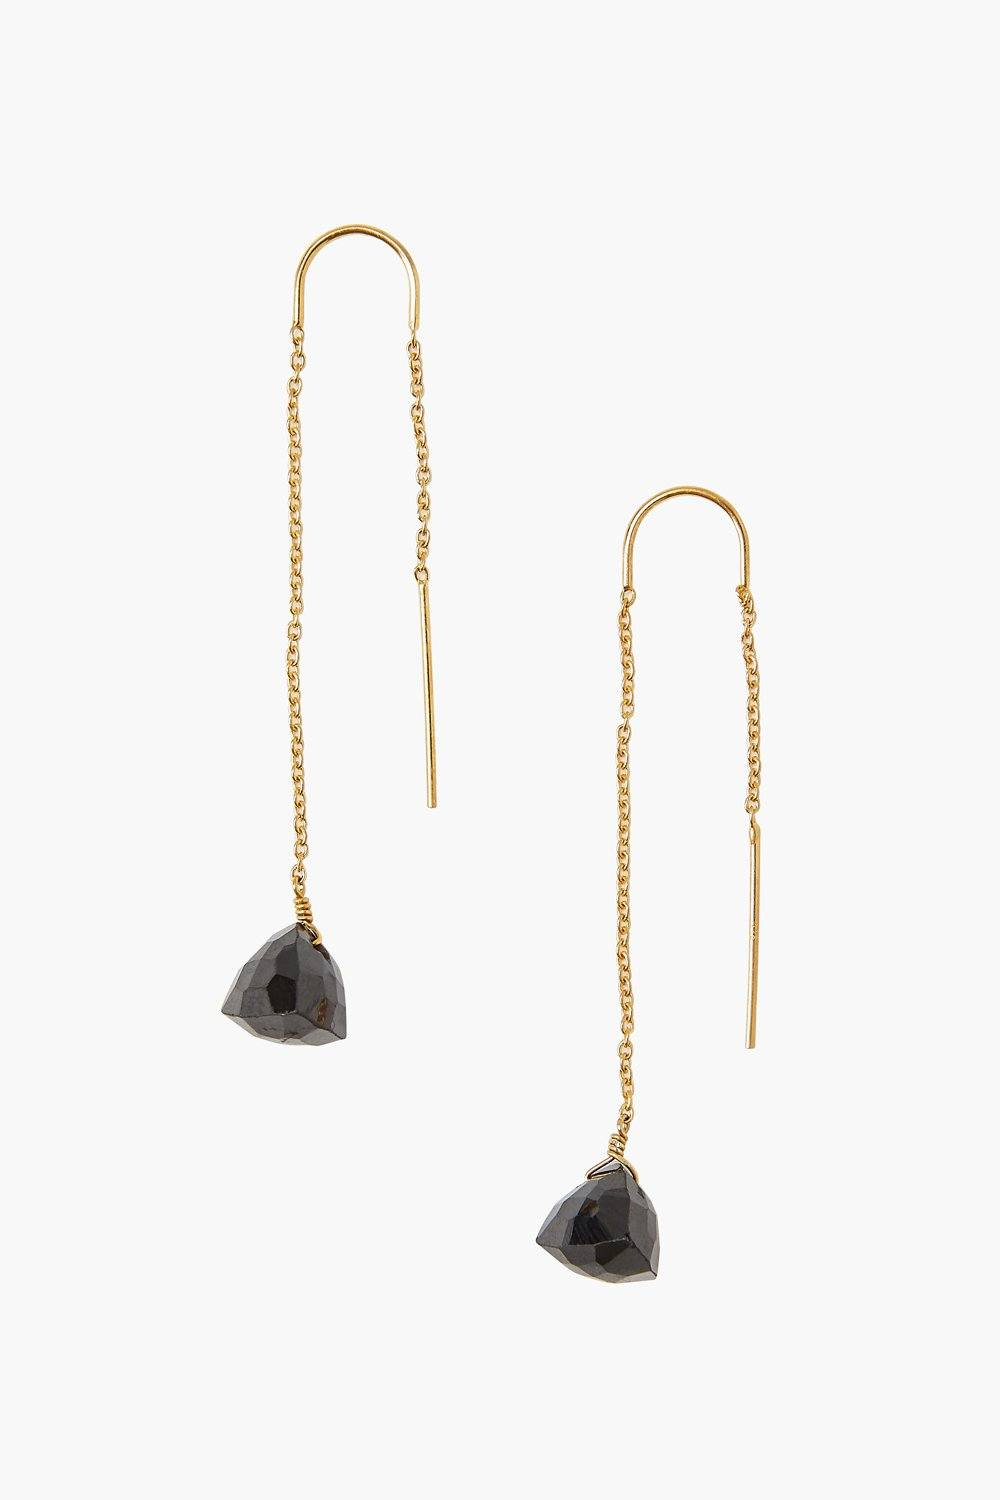 Black Spinel Thread-Thru Earrings